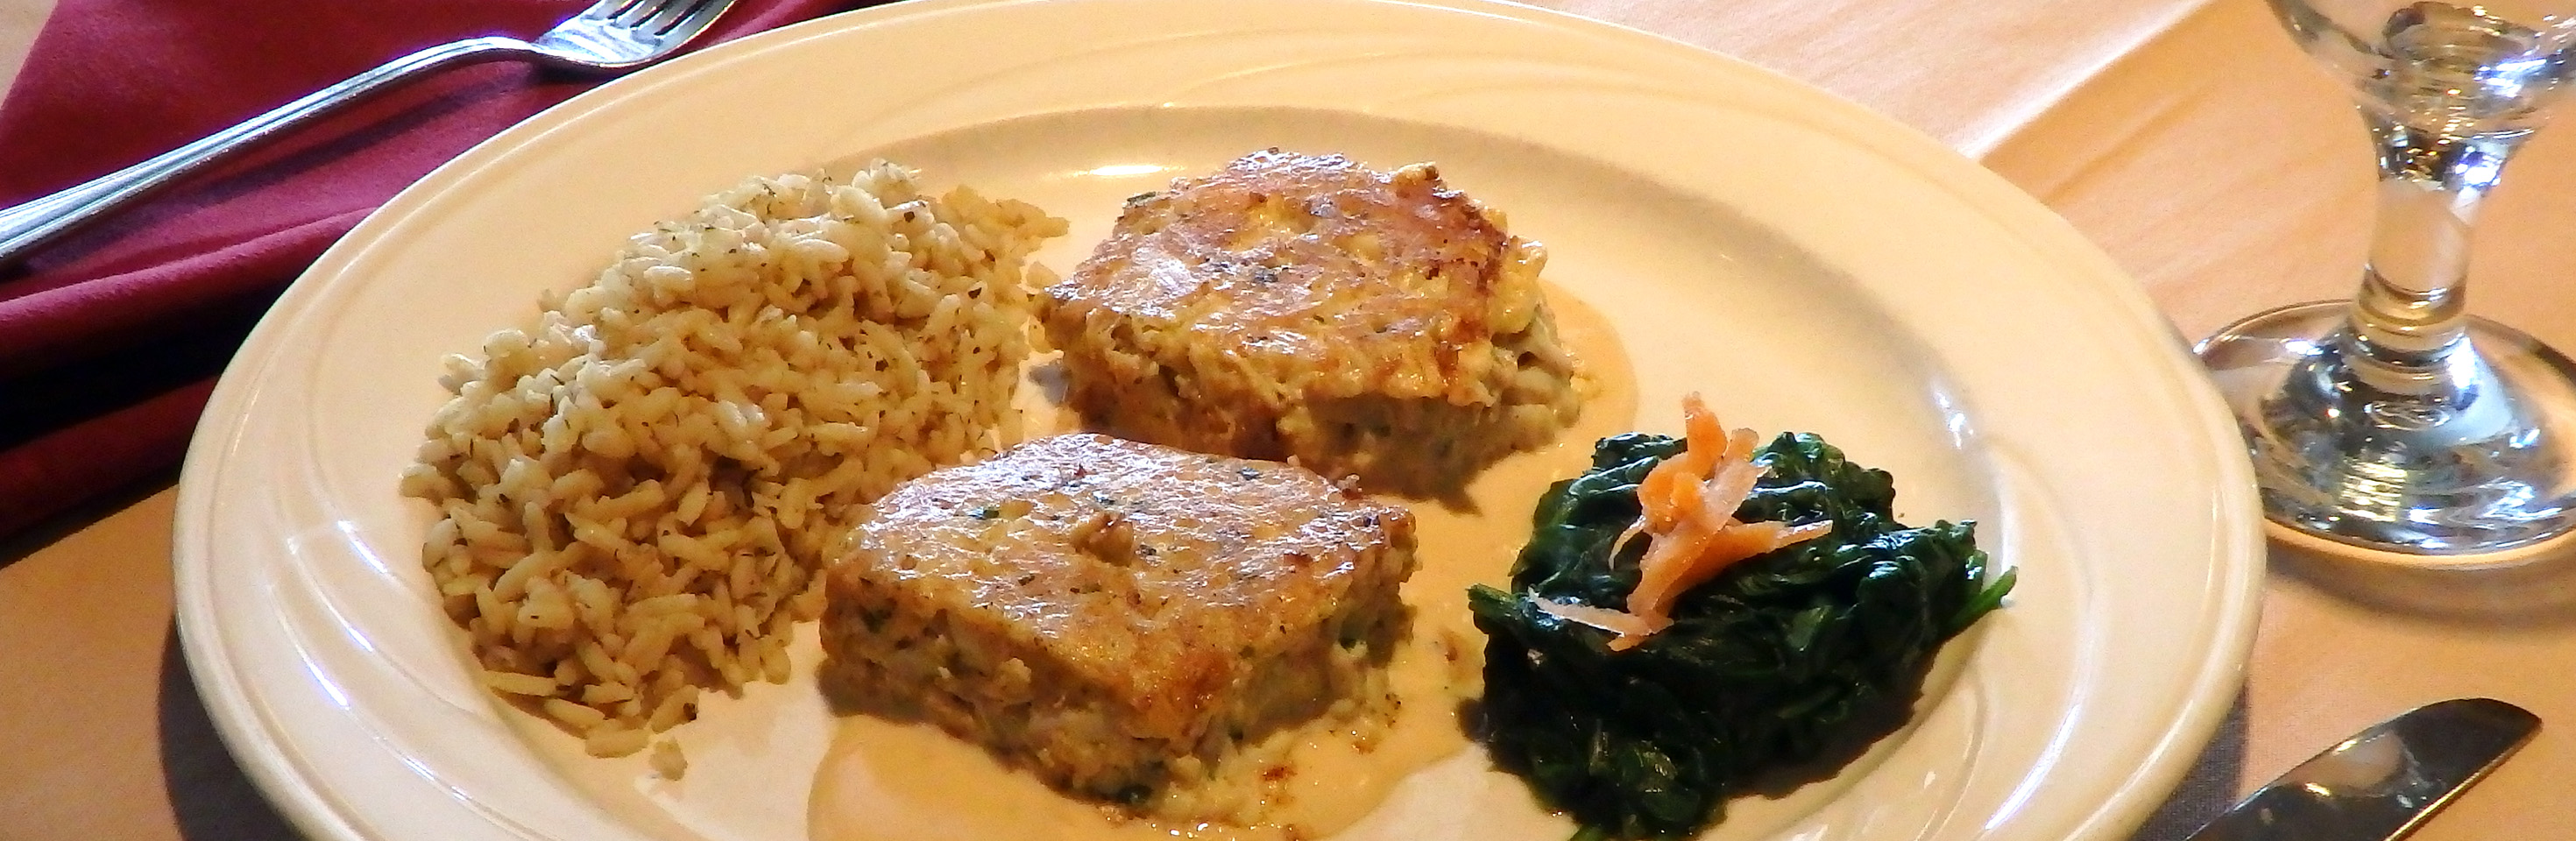 Kennett Square Inn Crabcakes